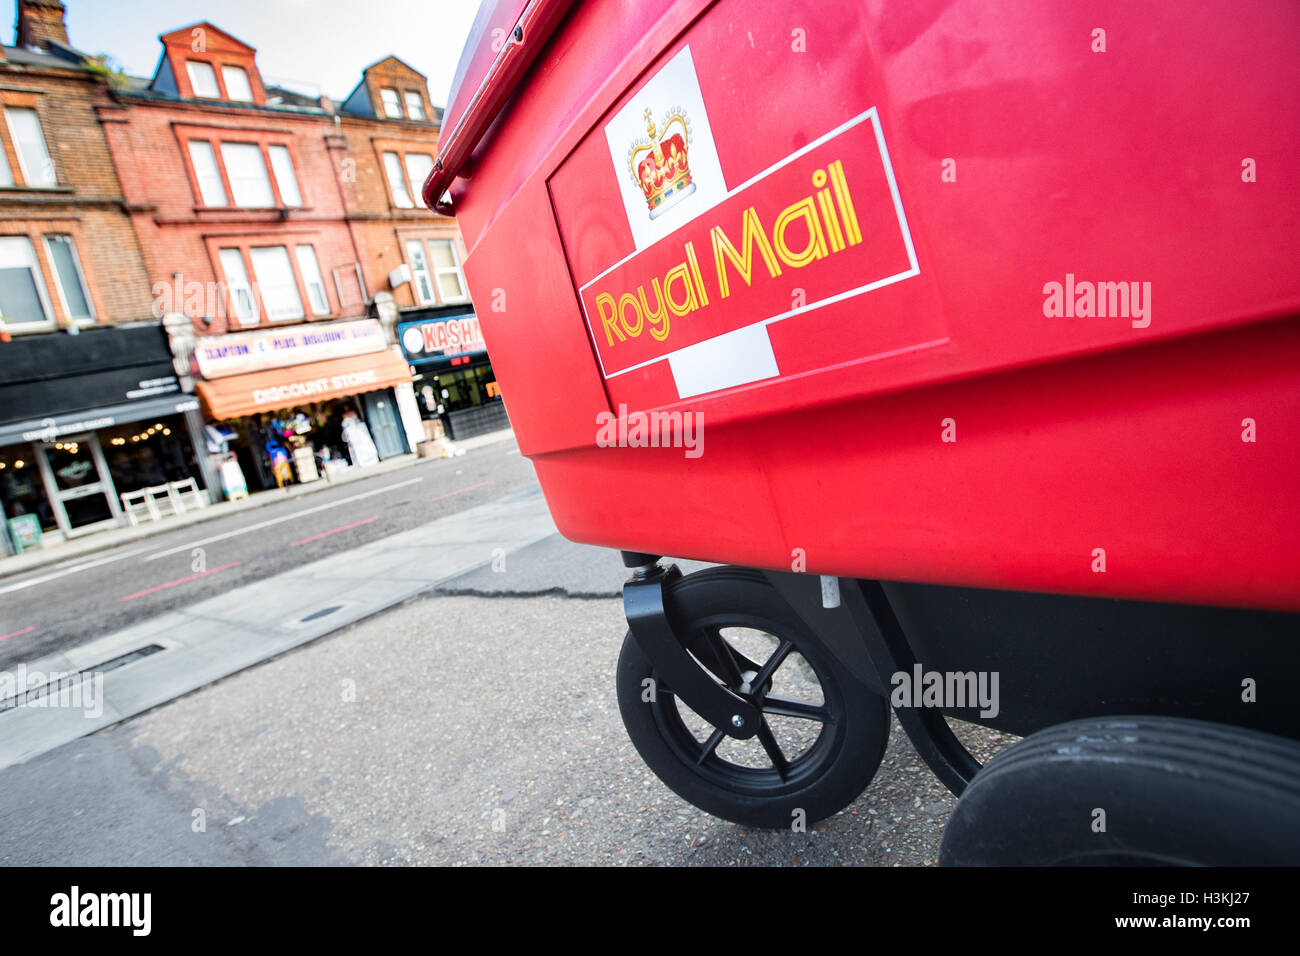 Royal Mail Post Office Trolley London England United Kingdom - Stock Image